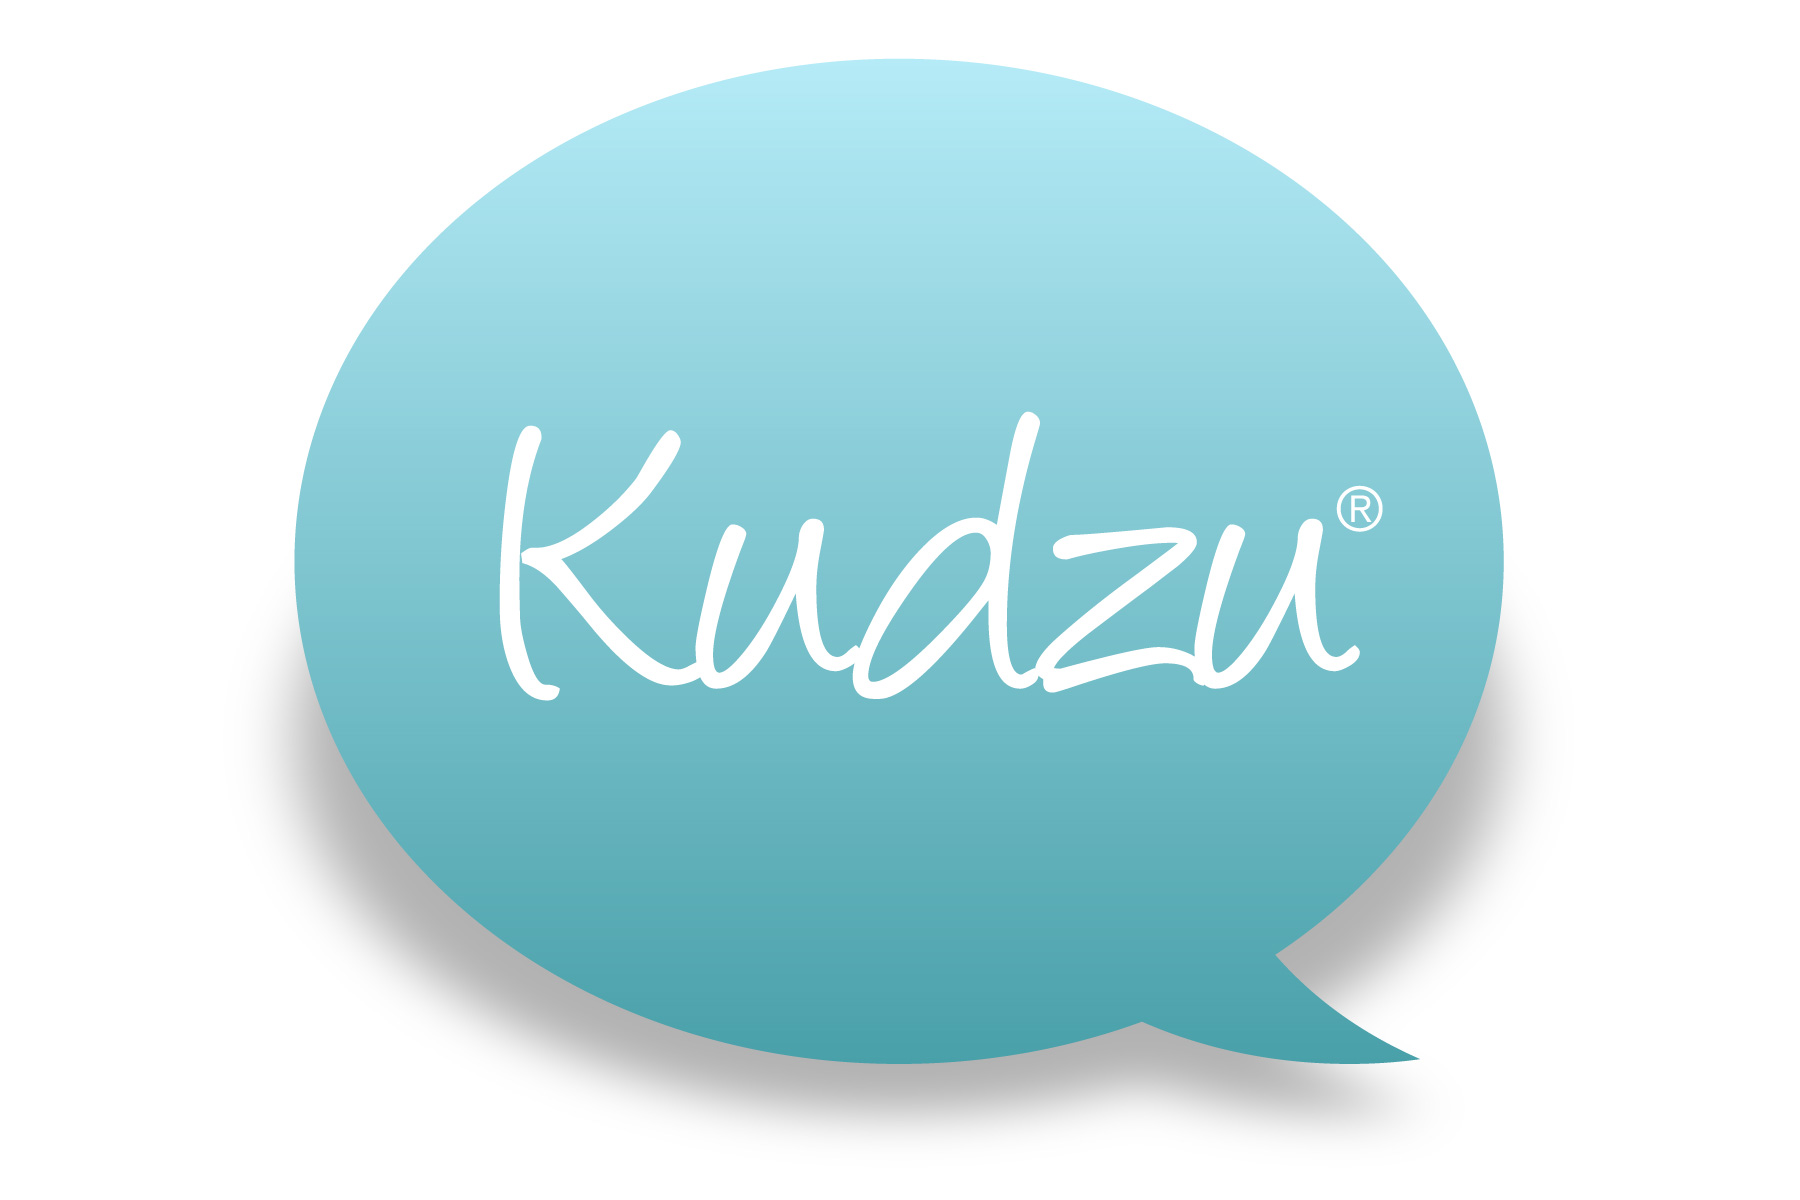 Write a review on Kudzu!